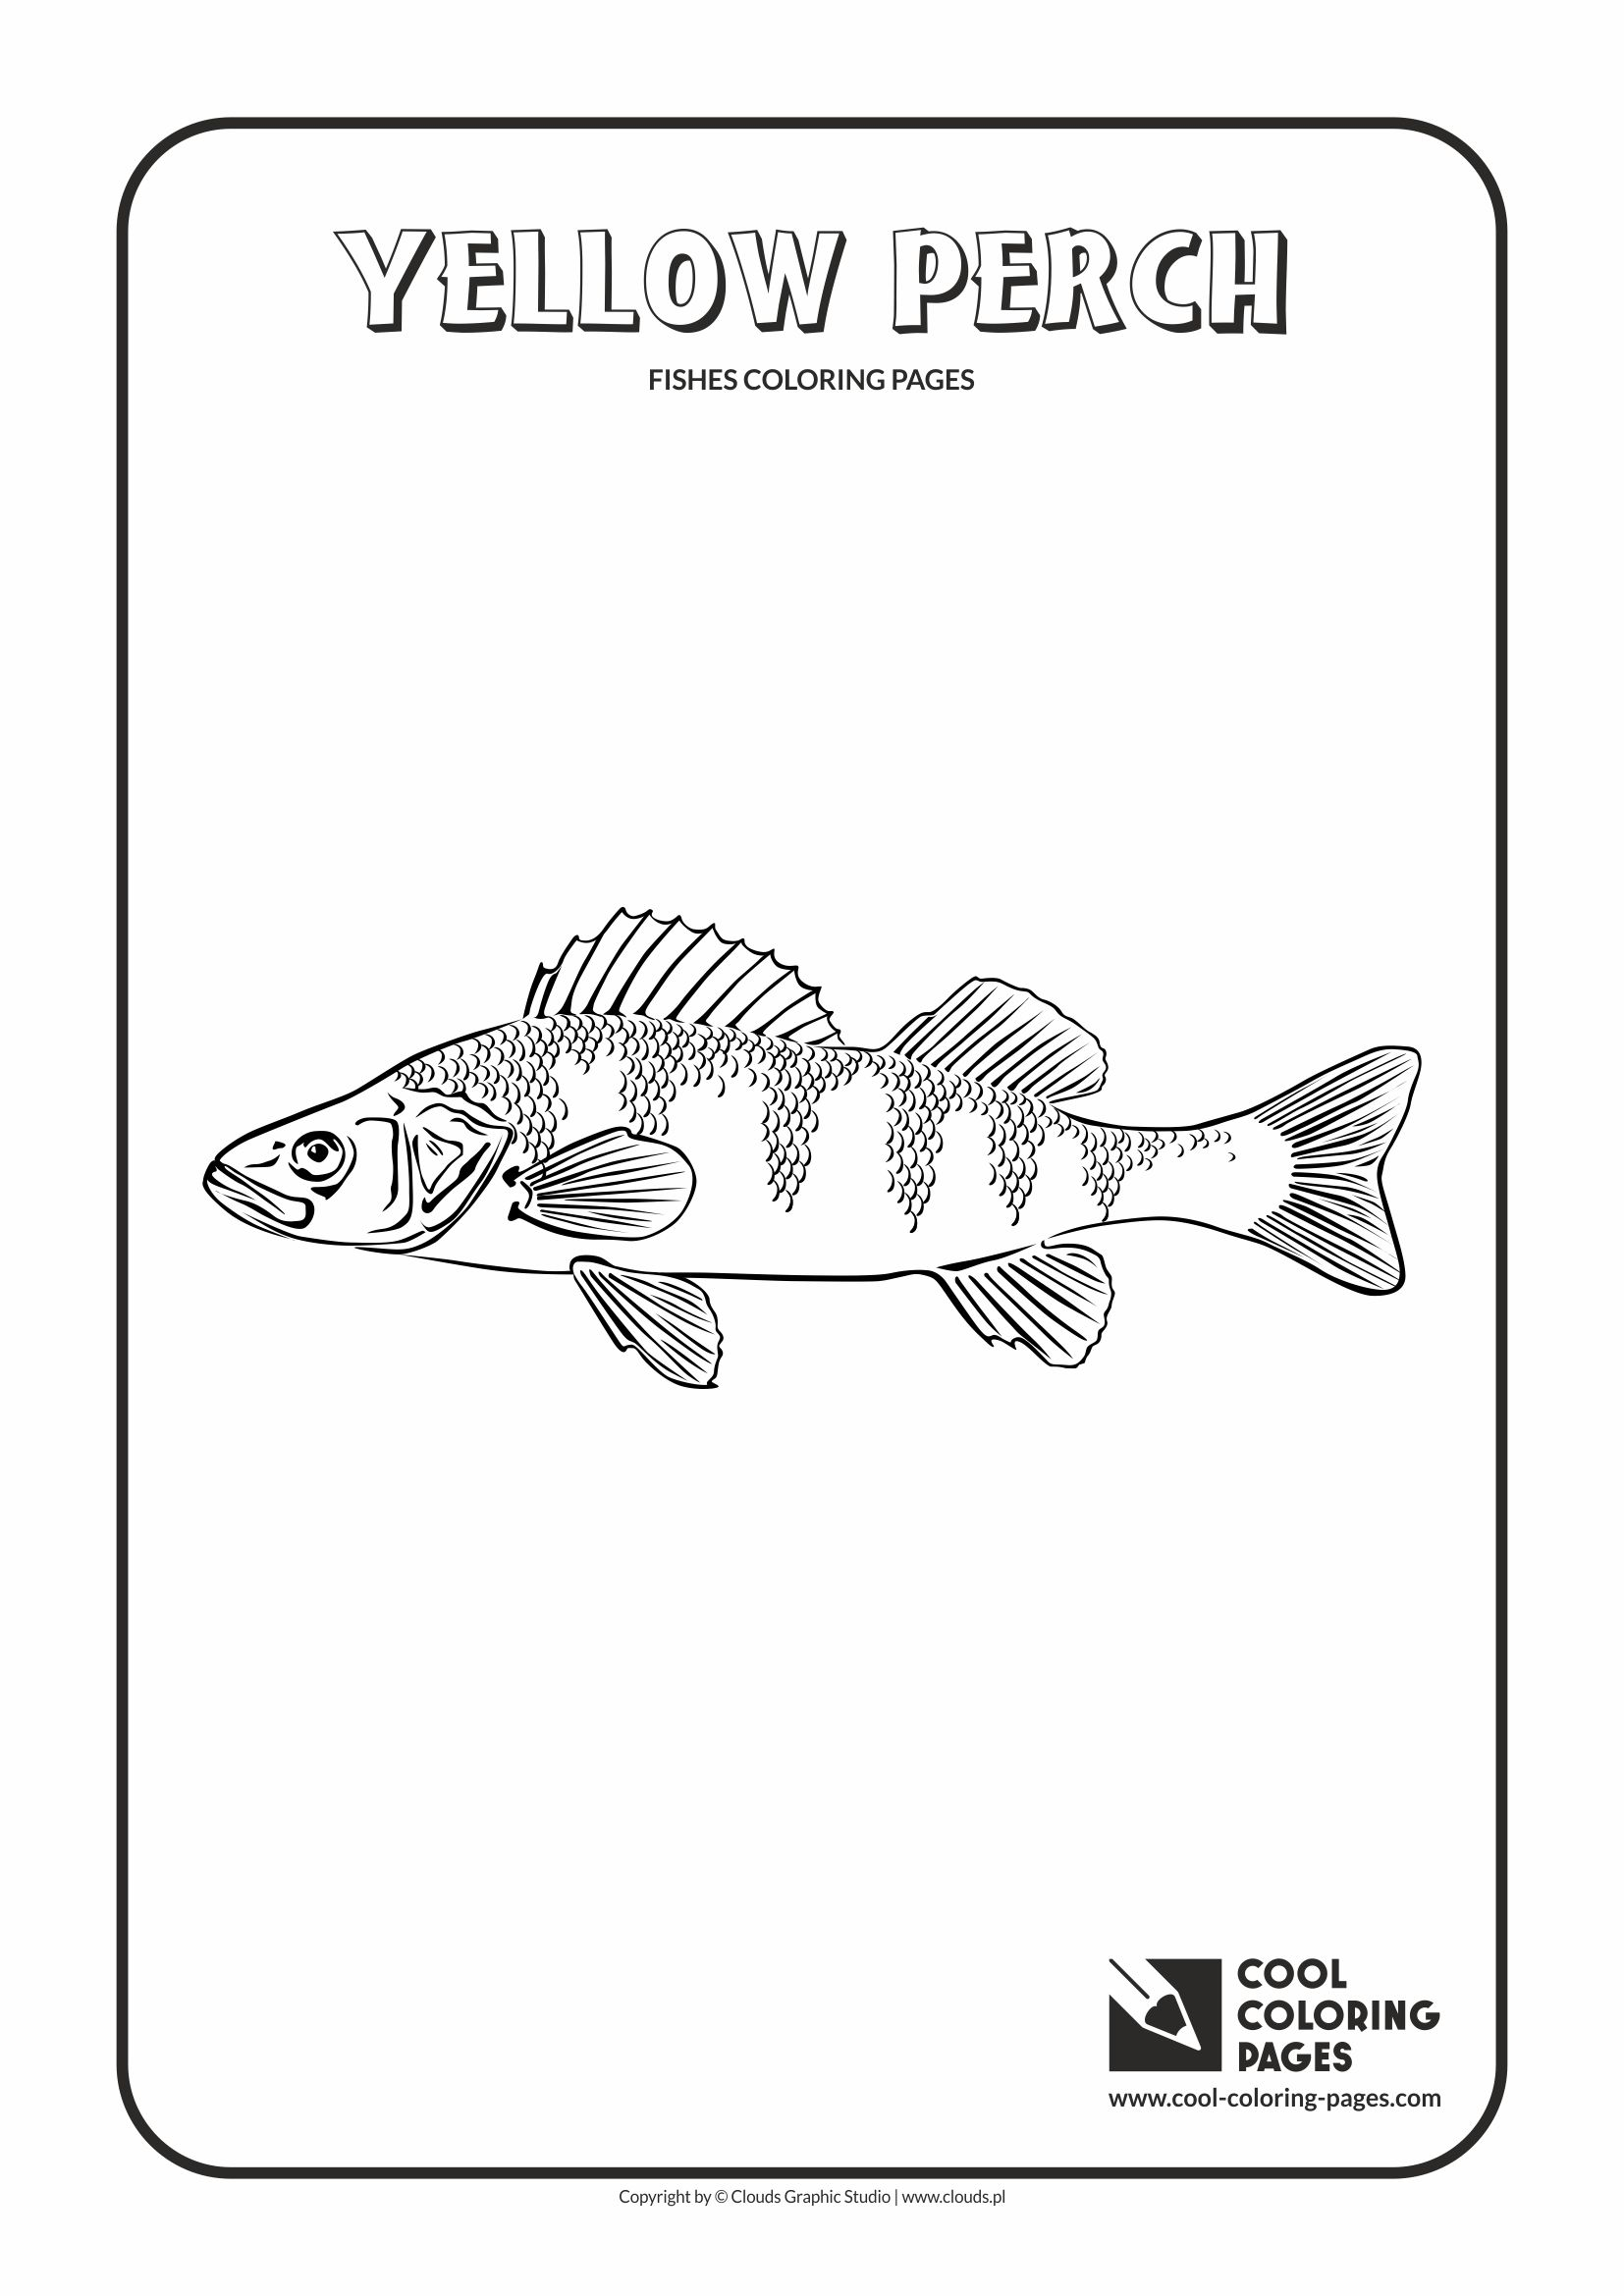 Cool Coloring Pages Fishes Coloring Pages Cool Coloring